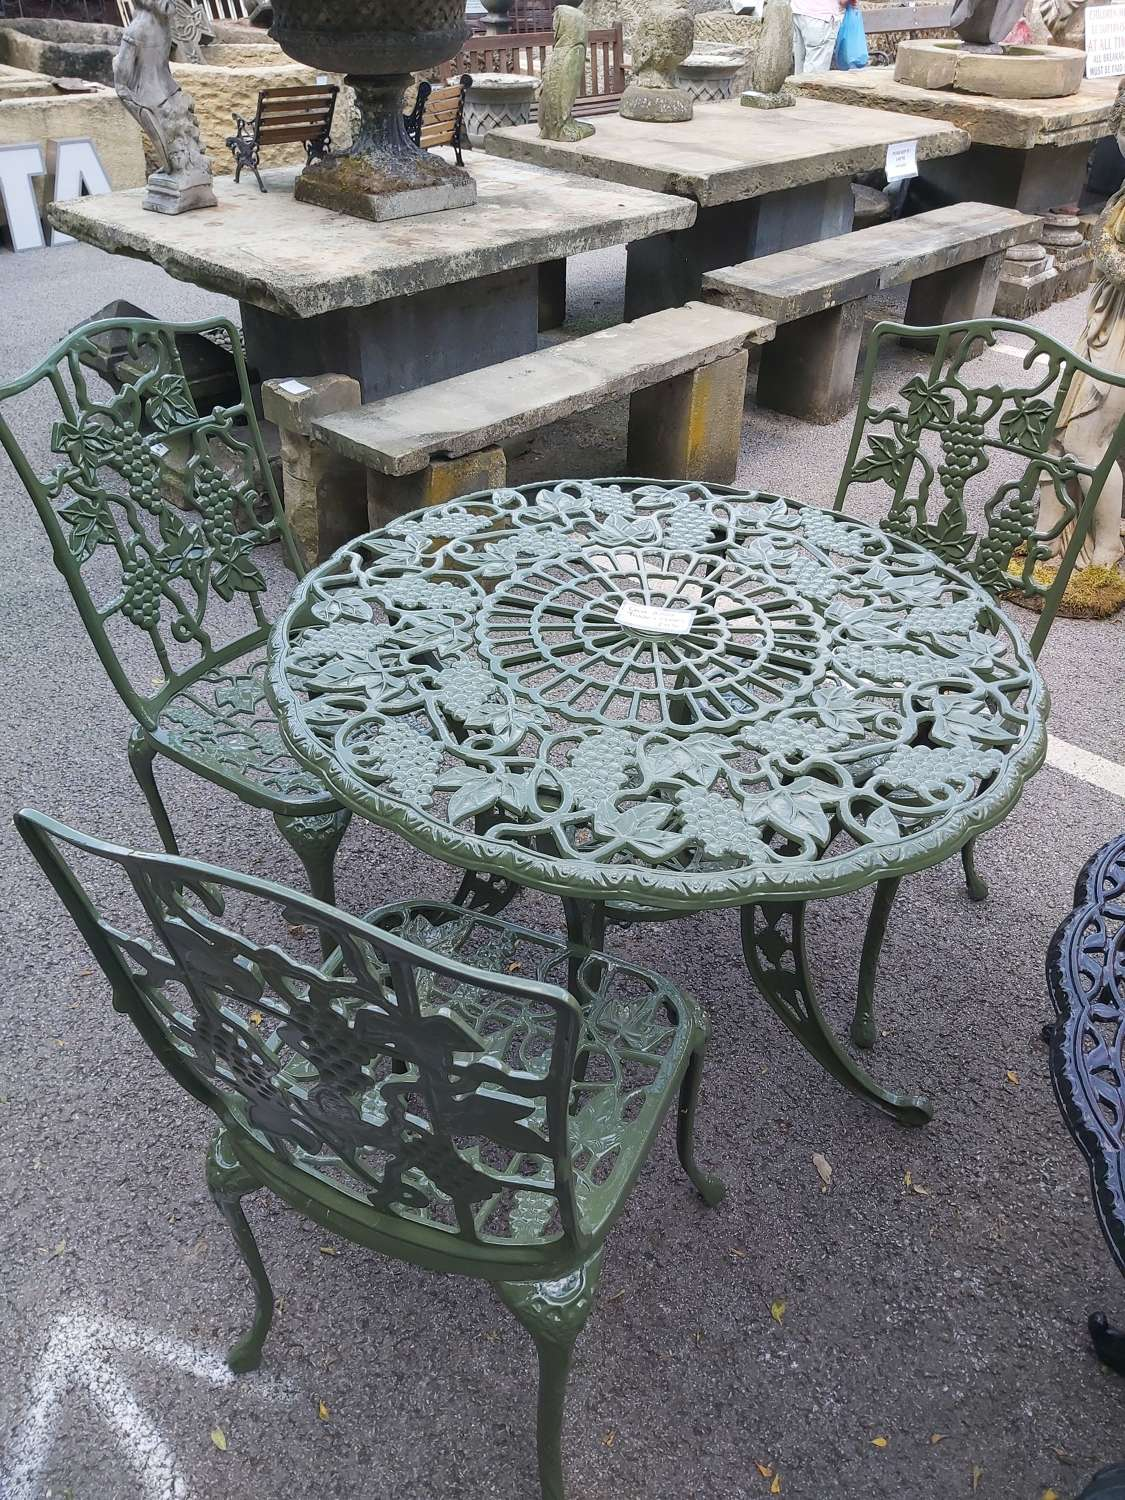 REFURBISHED CAST ALLOY TABLE AND CHAIRS